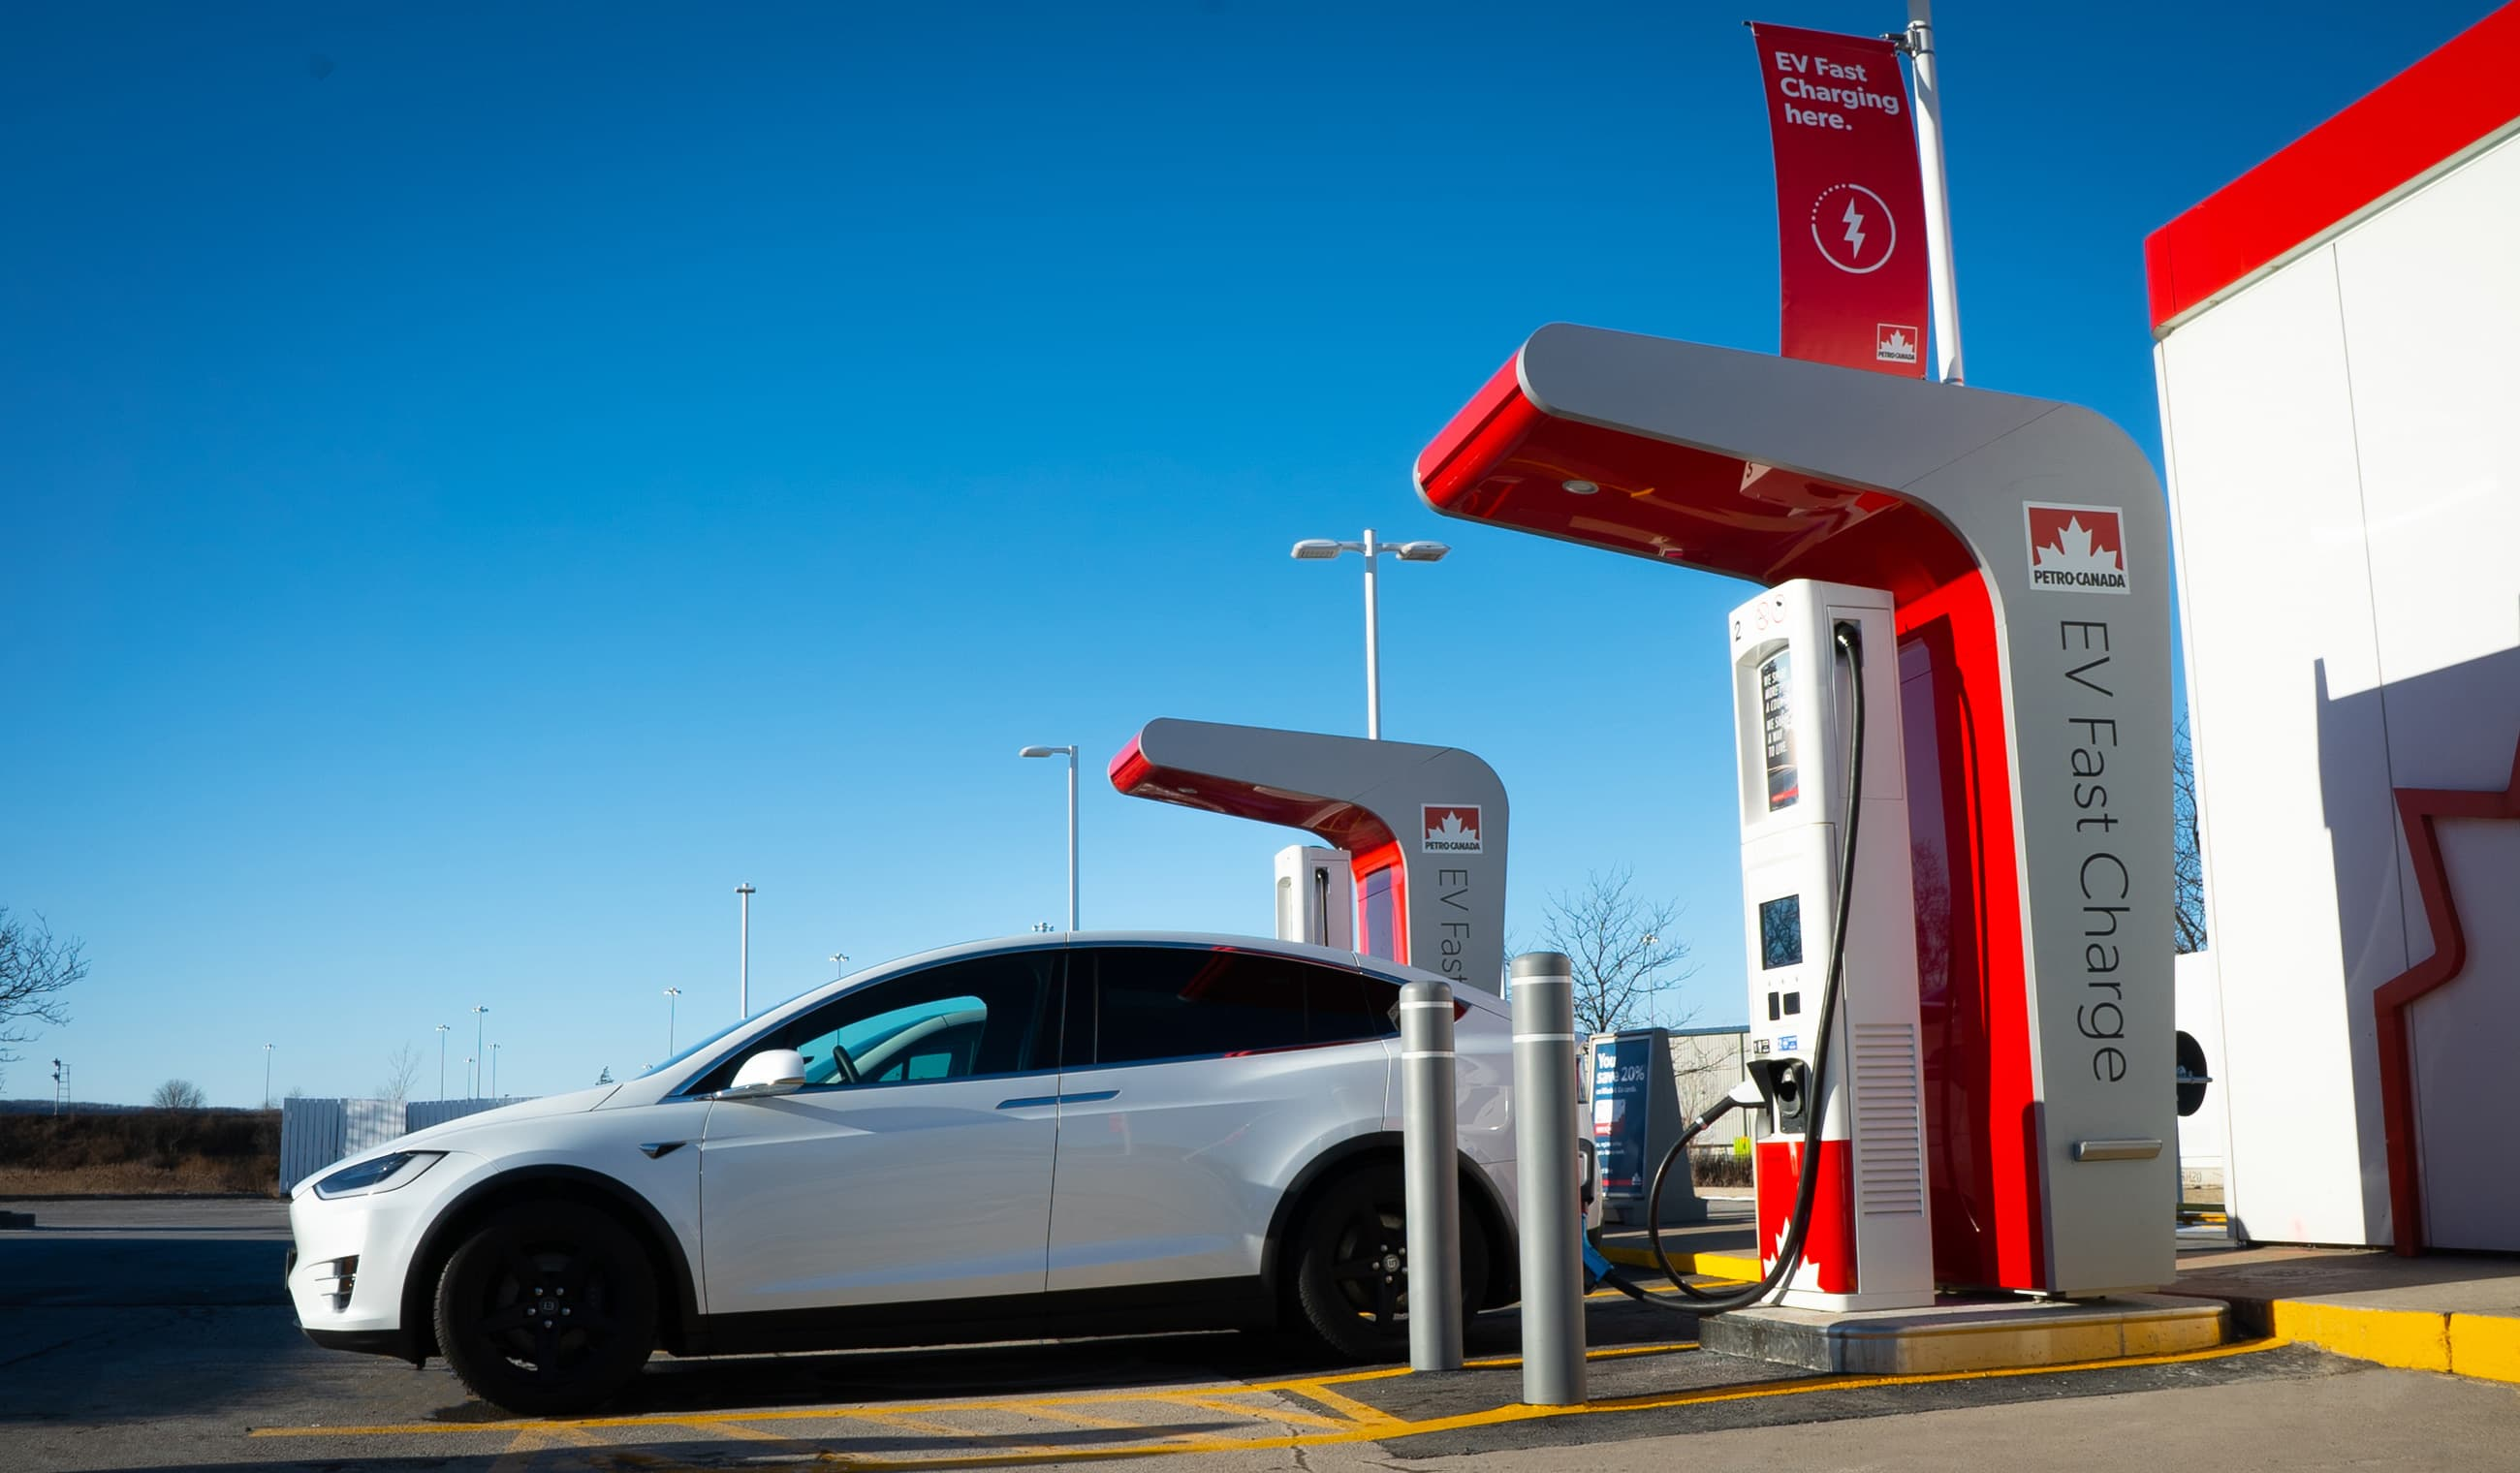 Petro-Canada electric vehicle charging station in Milton, Ontario.